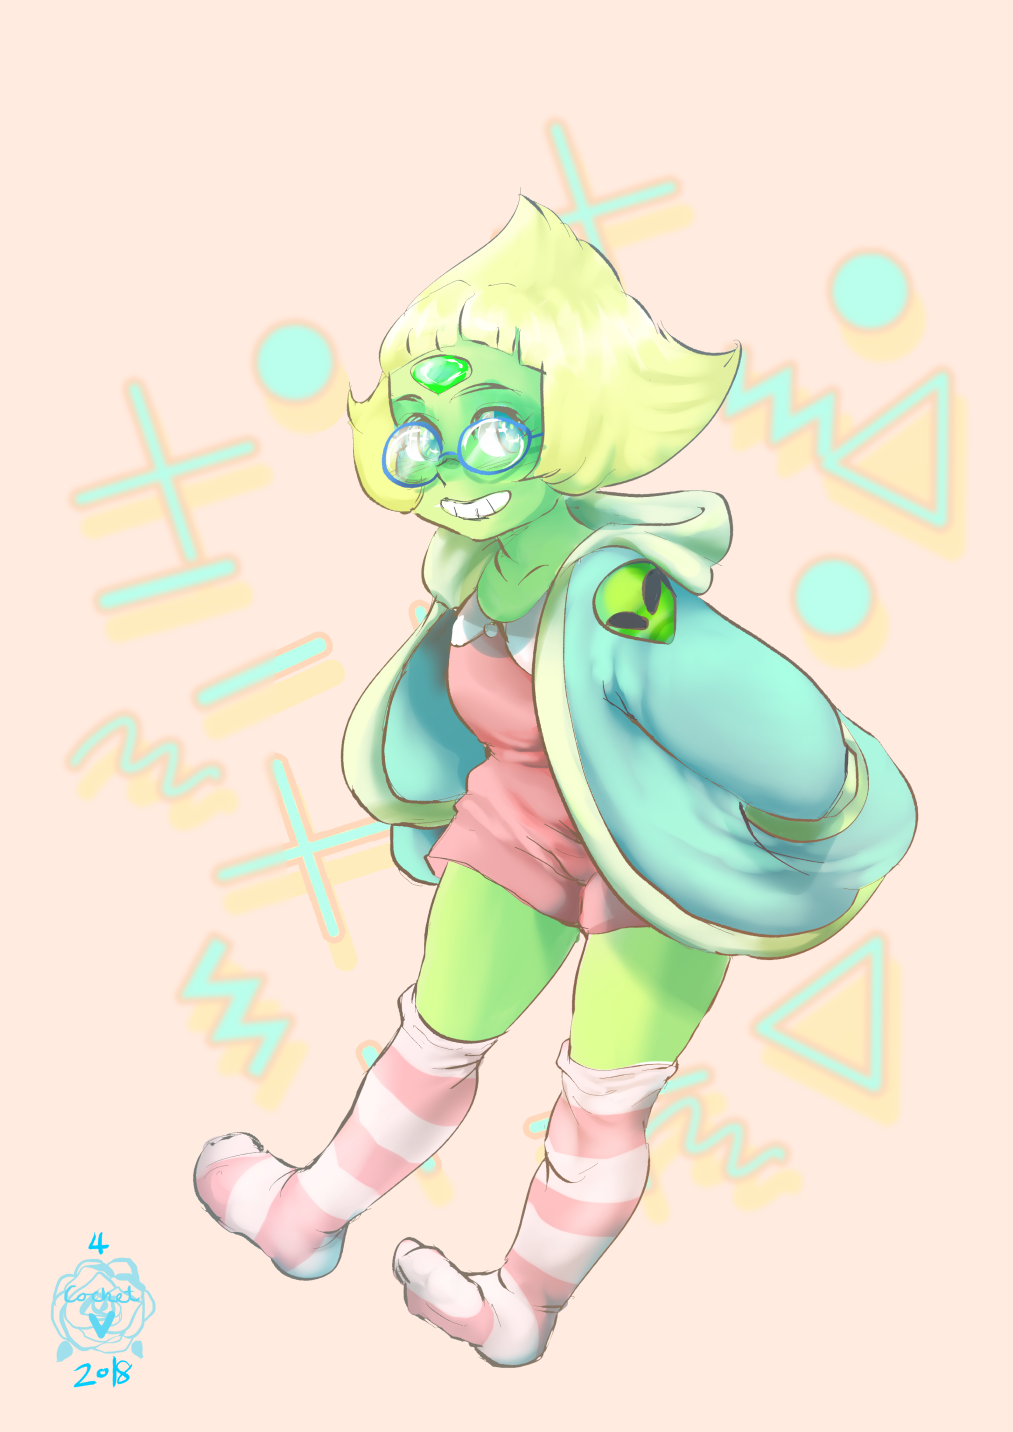 probably offmodel cos i did it without ref lol i just wanted to doodle peridot, still dont feel quite at home with clip studio paint yet but im gettin there!